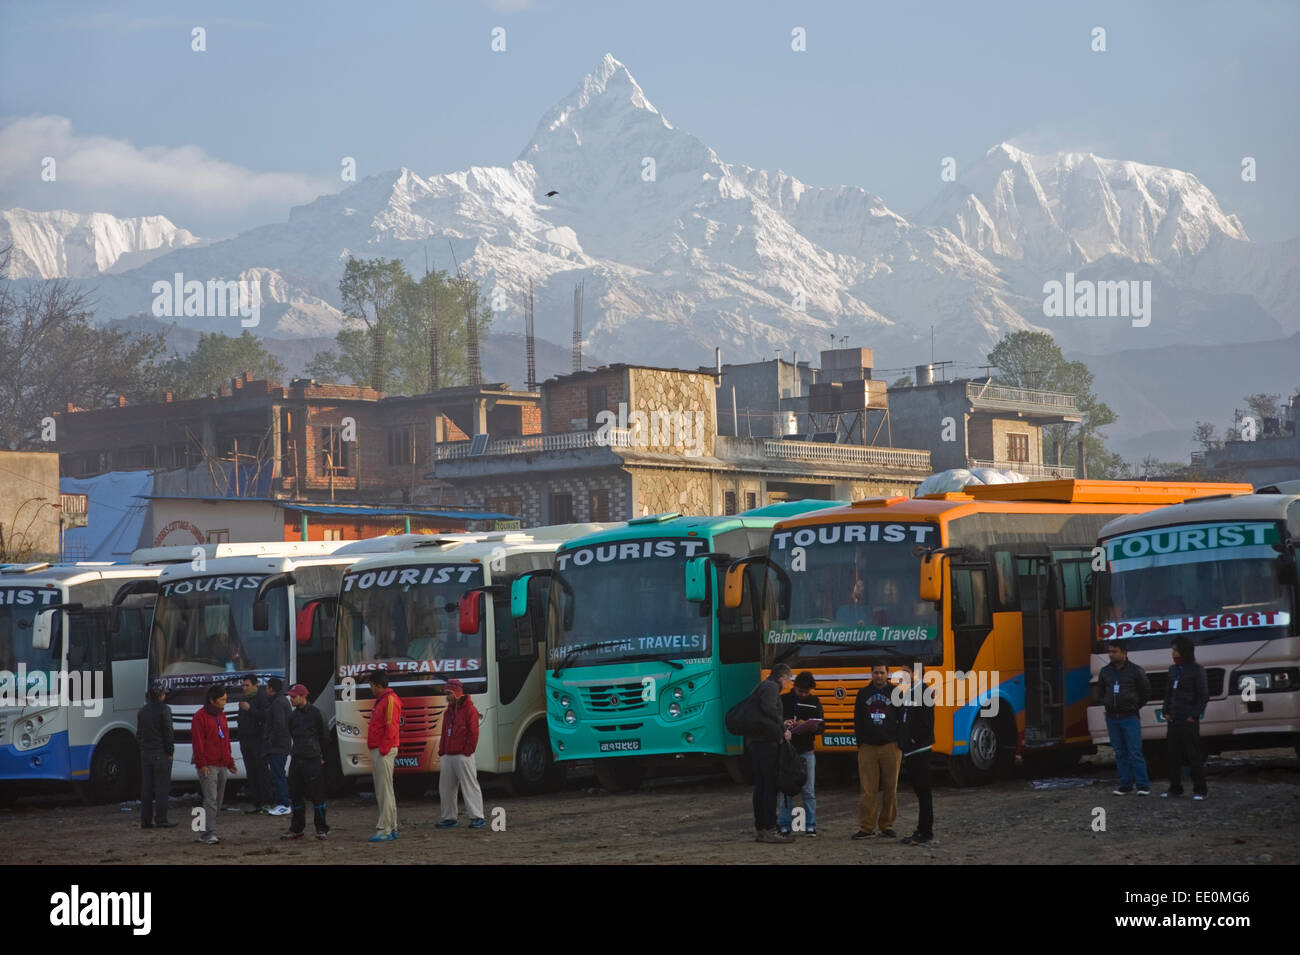 Tourist coaches and Himalayan peaks at Pokhara, Nepal. - Stock Image